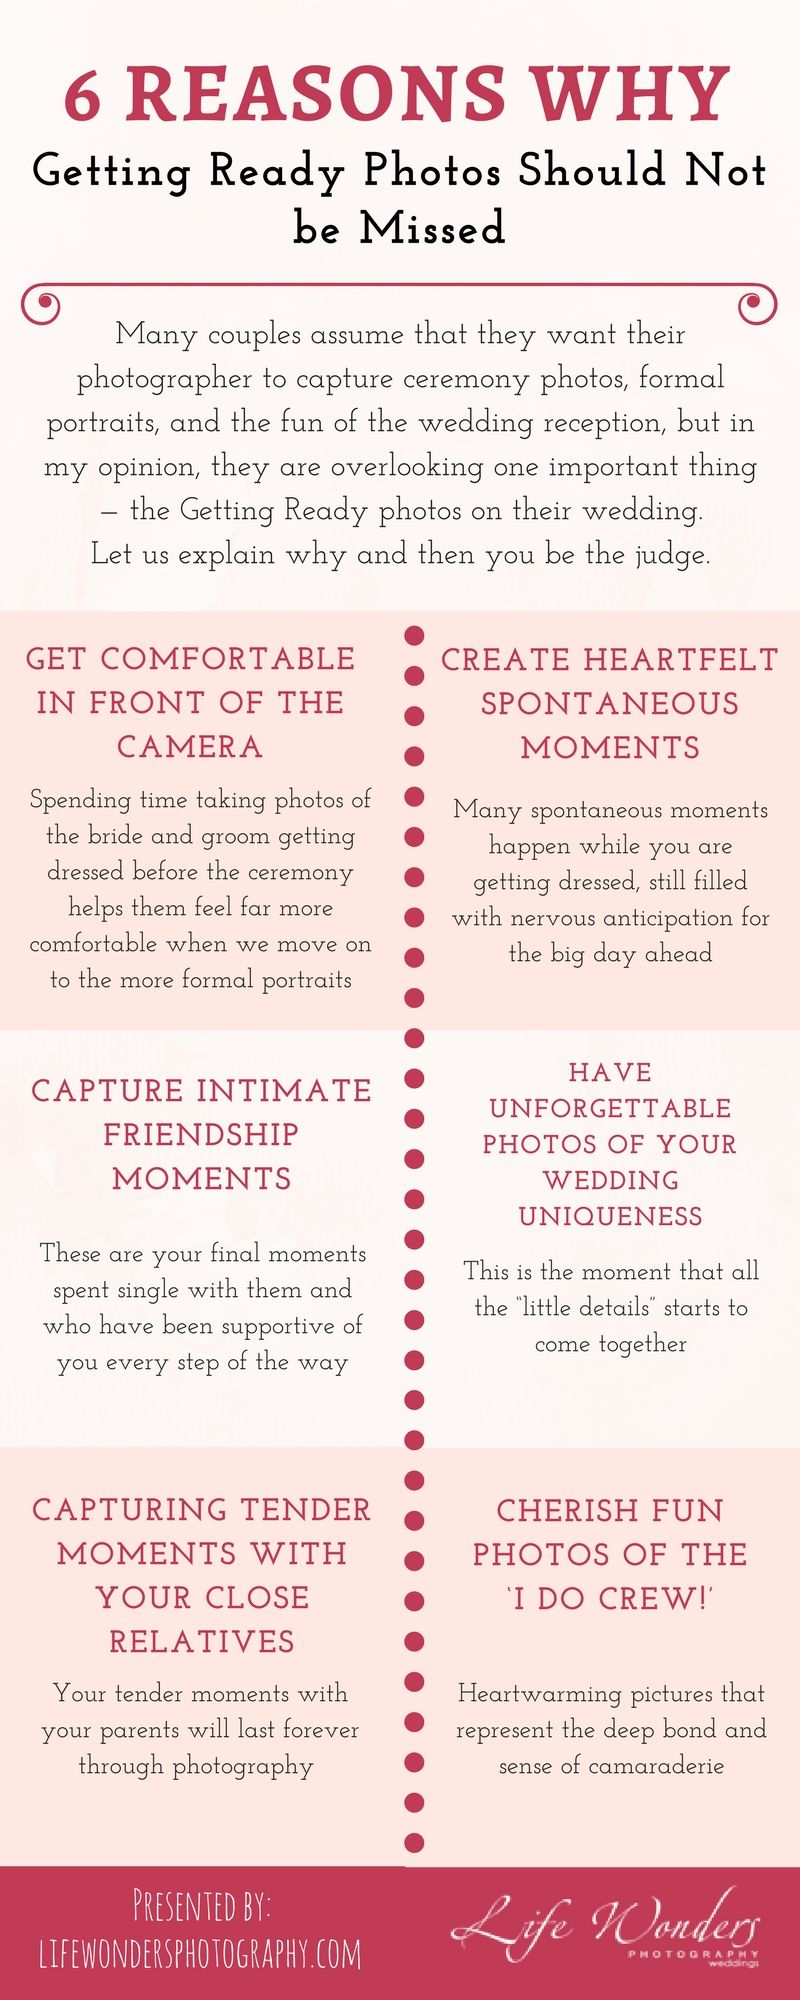 6 Reasons Why Getting Ready Photos Should Not Be Missed